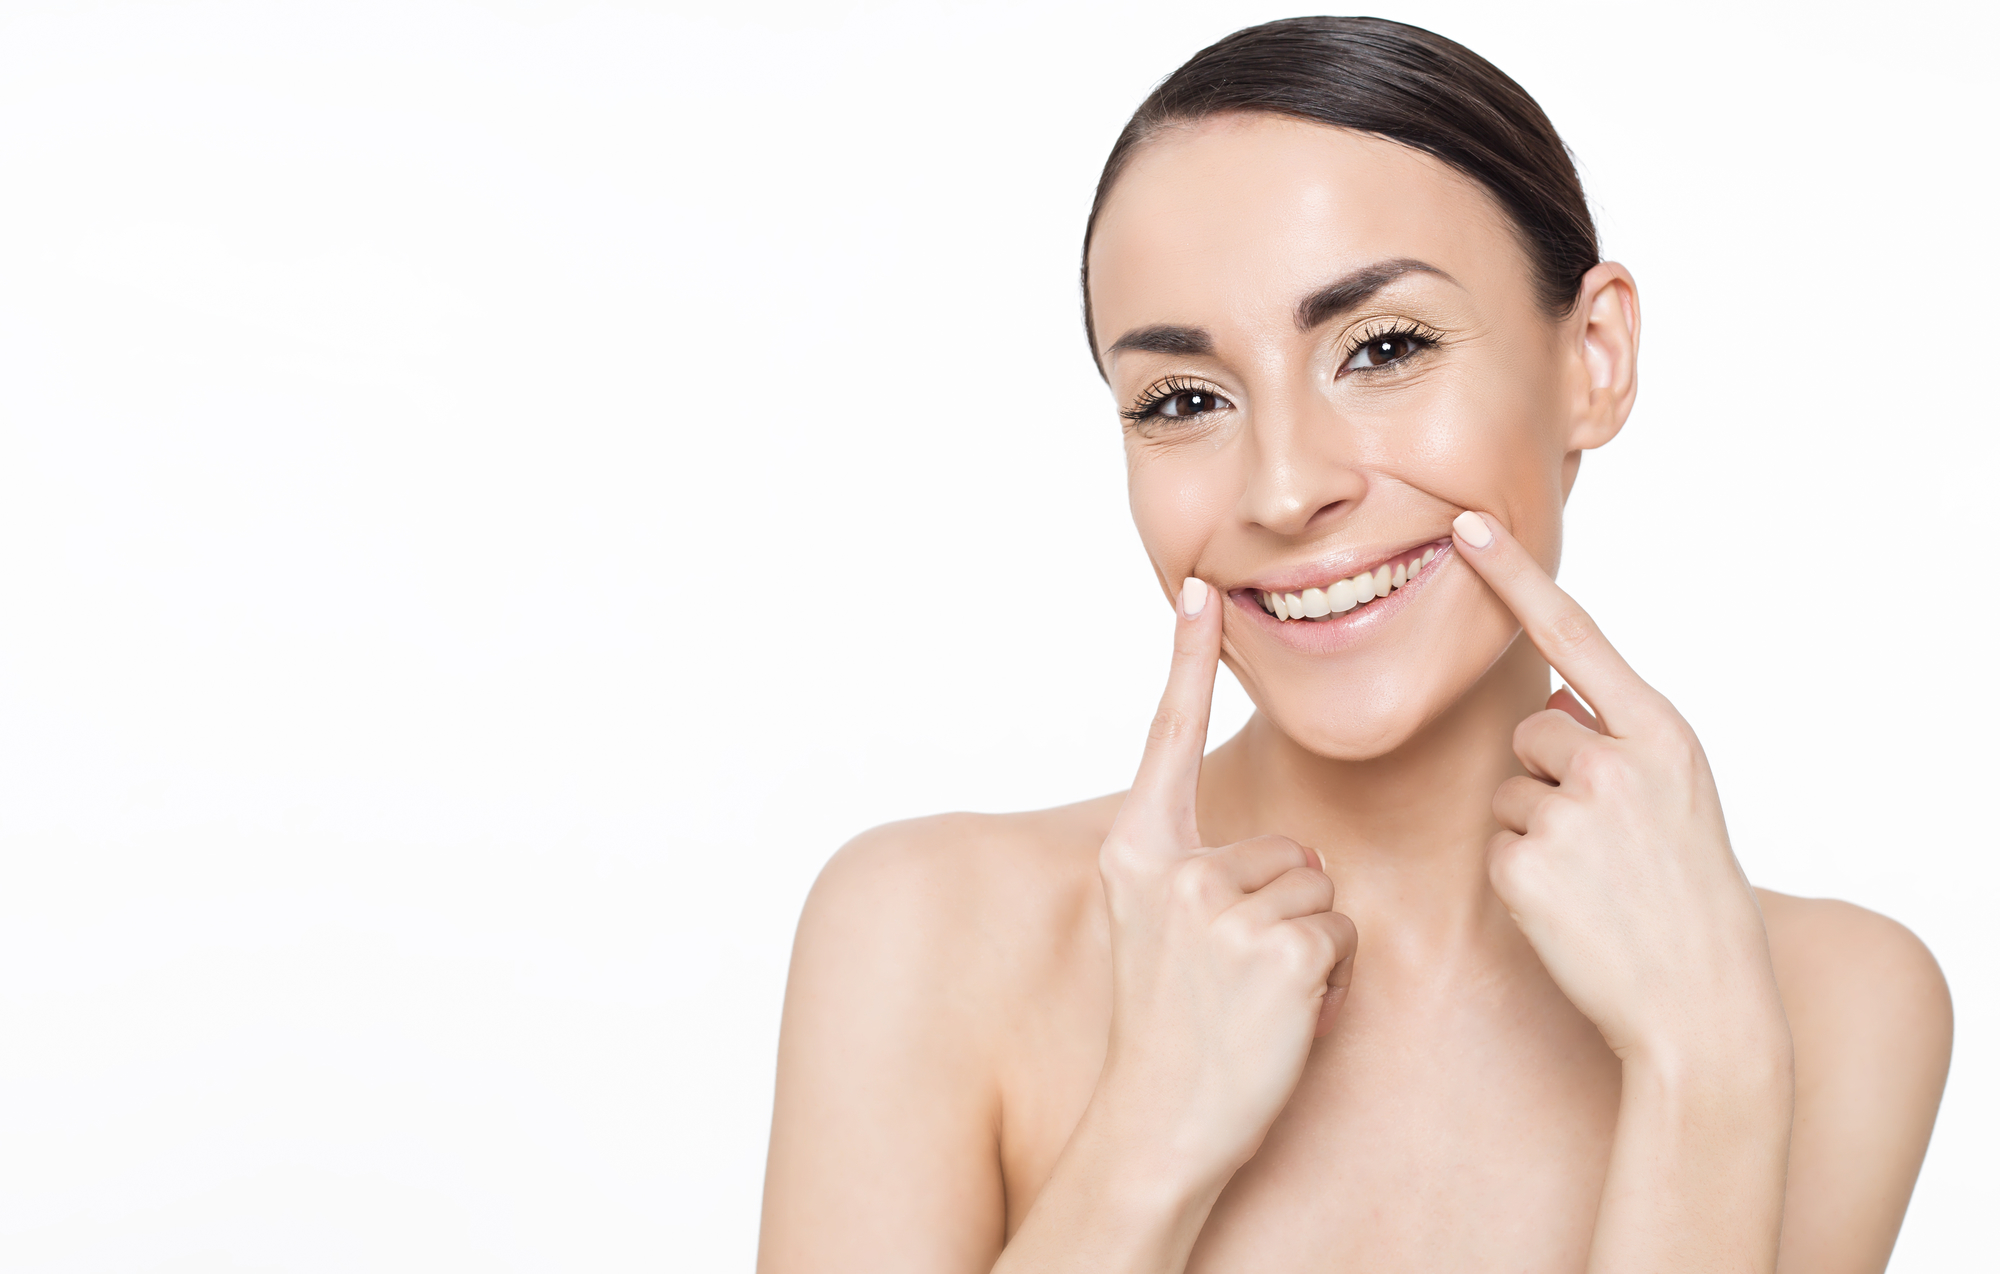 where should i find veneers in tamiami?